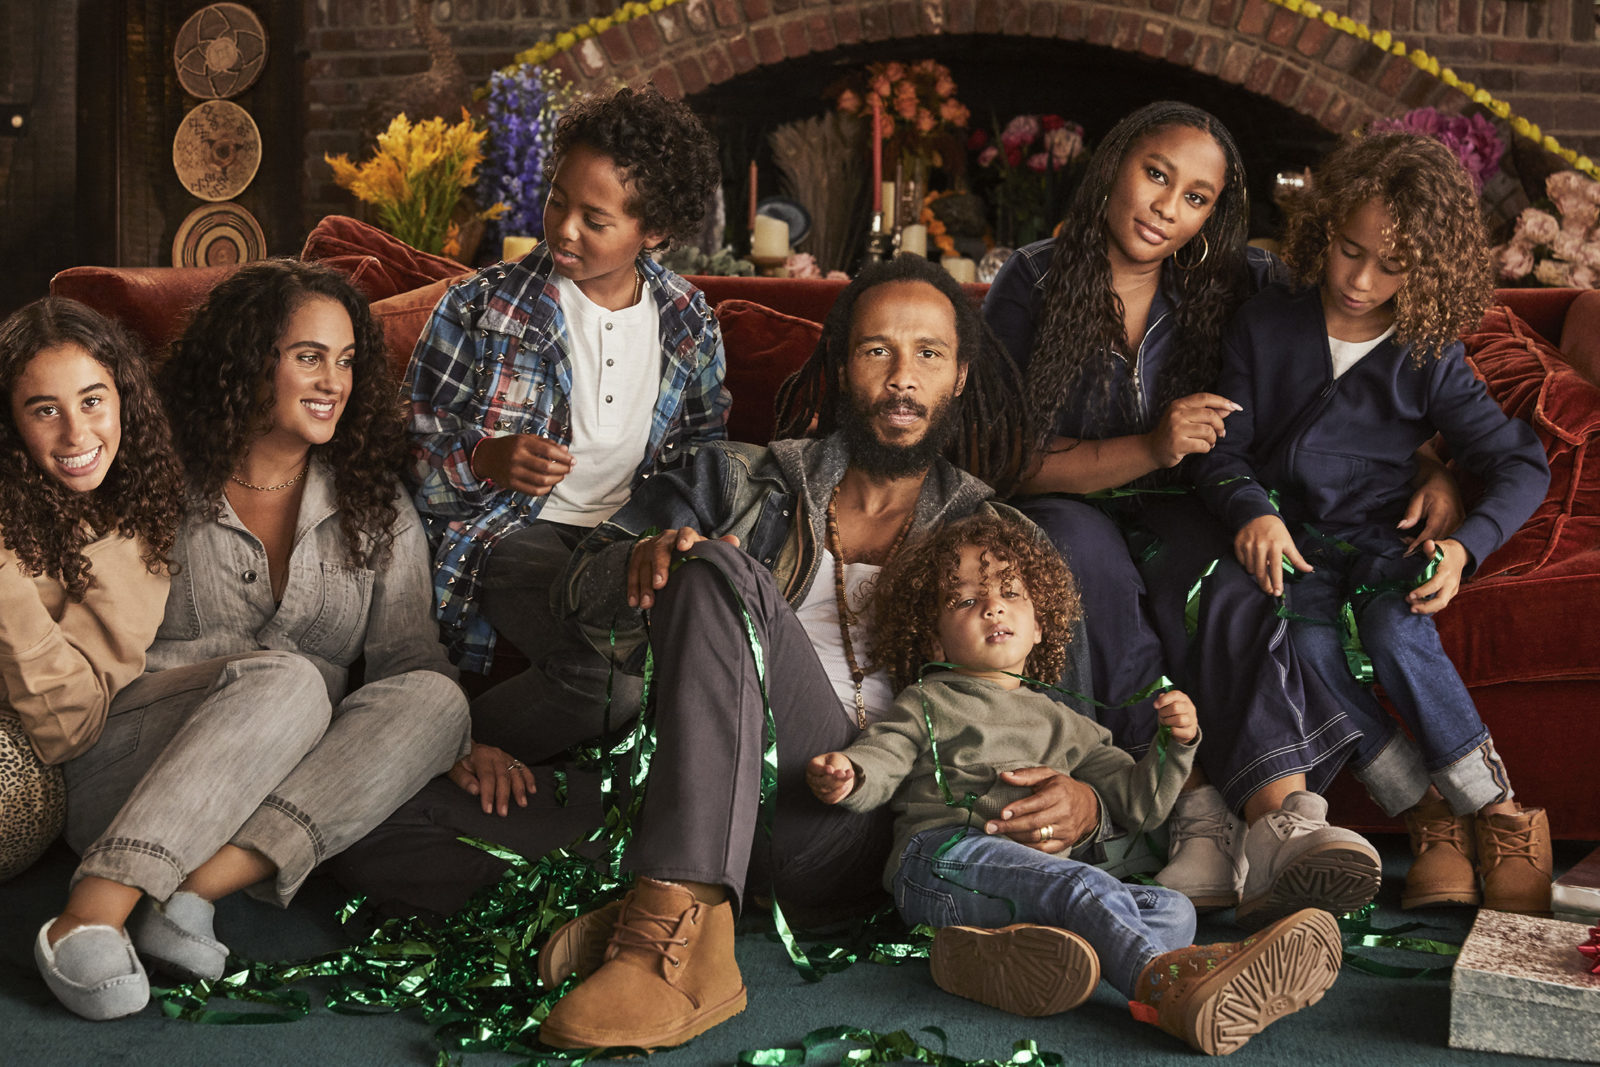 Ziggy Christmas 2020 ZIGGY MARLEY AND HIS FAMILY FOR THE UGG CHRISTMAS CAMPAIGN   CRASH